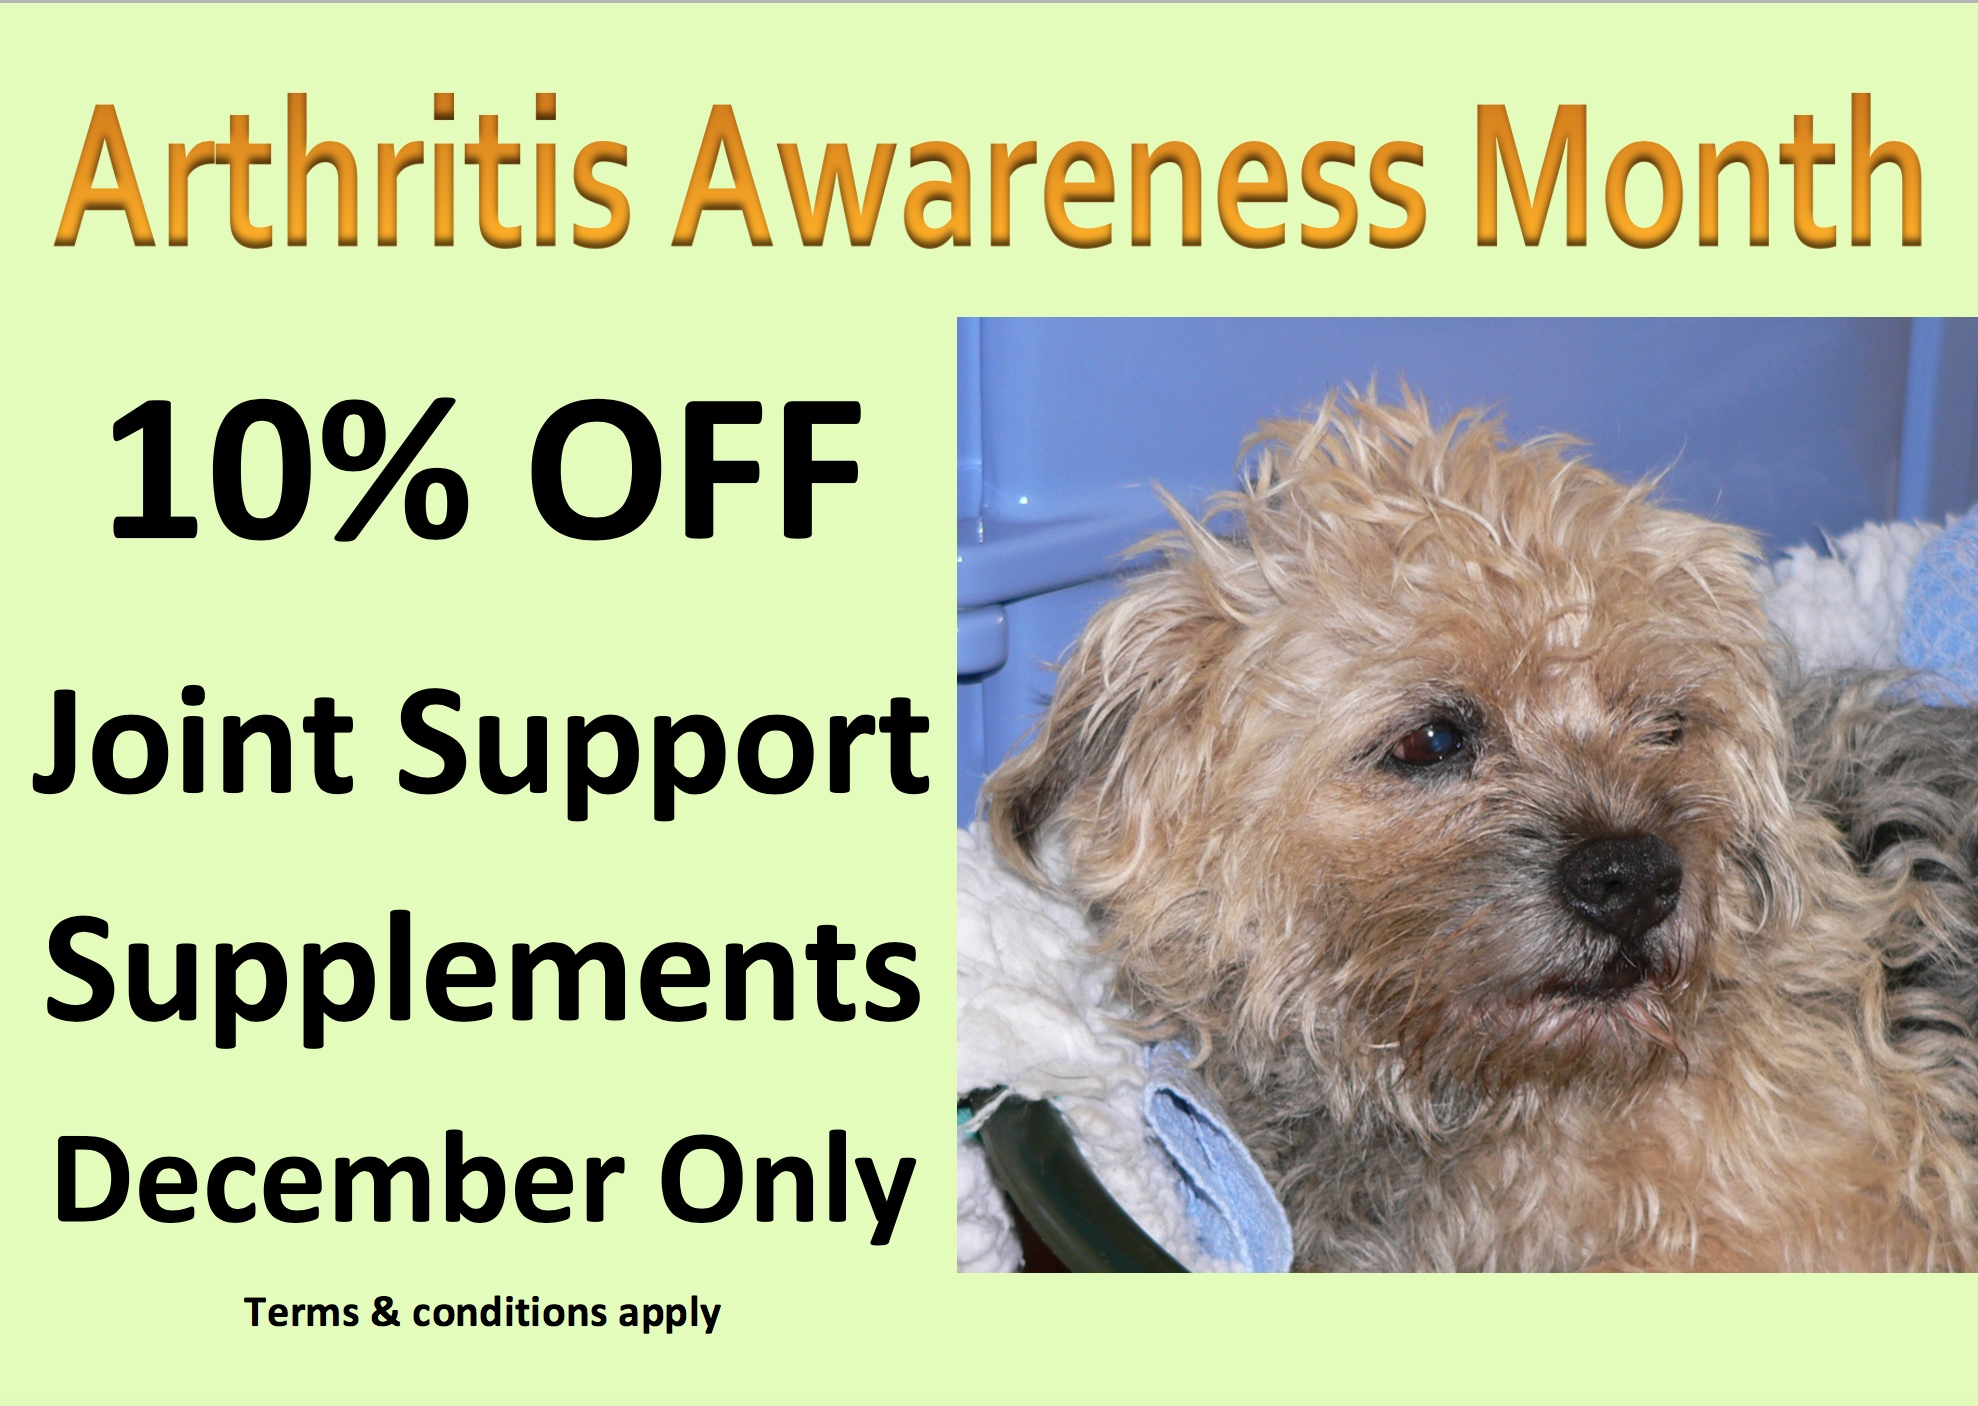 Dec-18 Arthritis Awareness Month smaller image